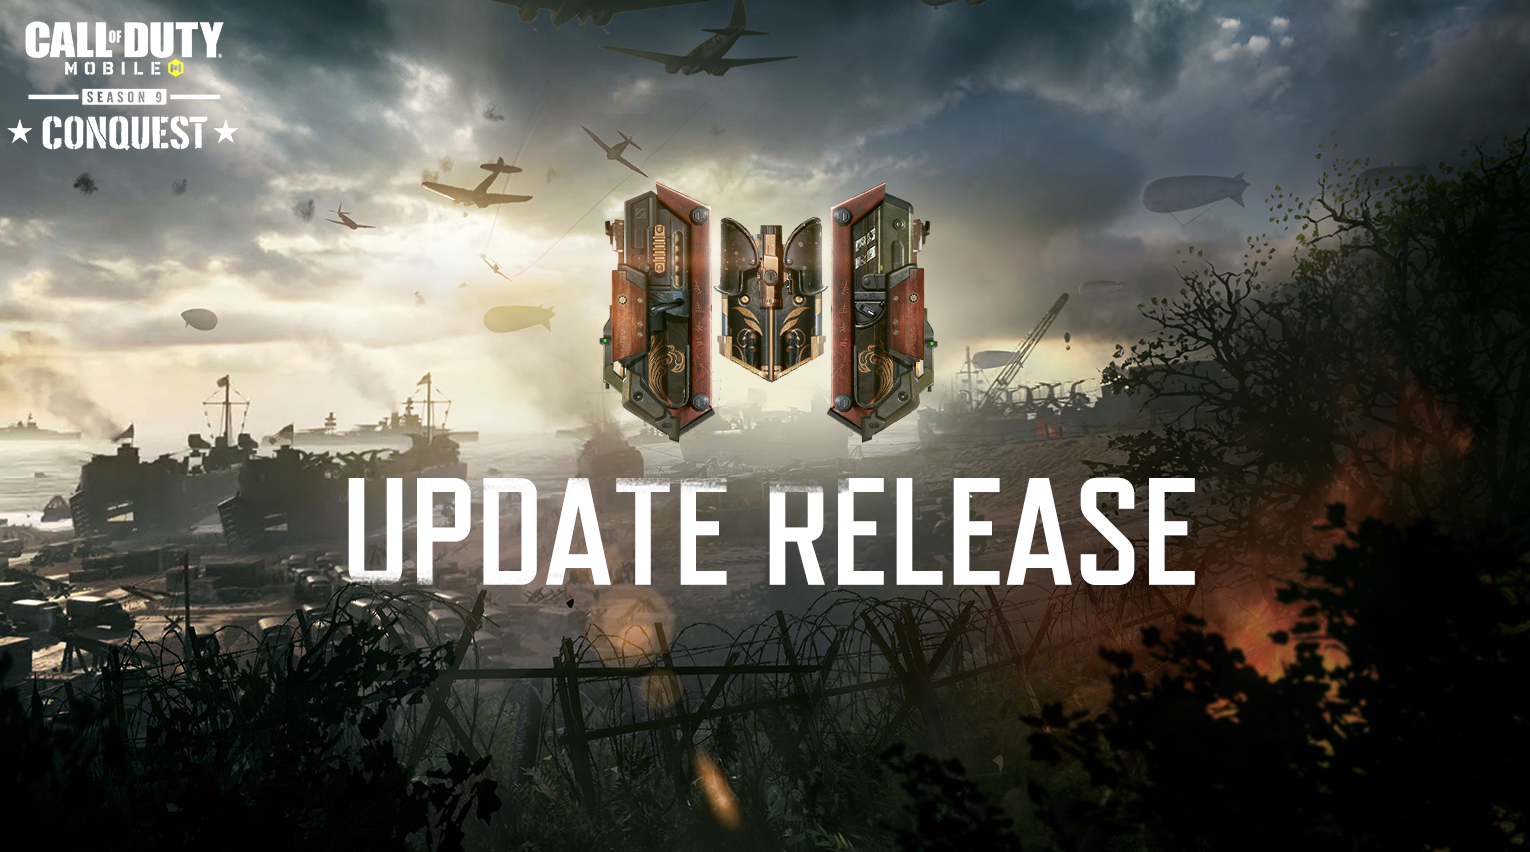 CoD Mobile update release with conquest logo